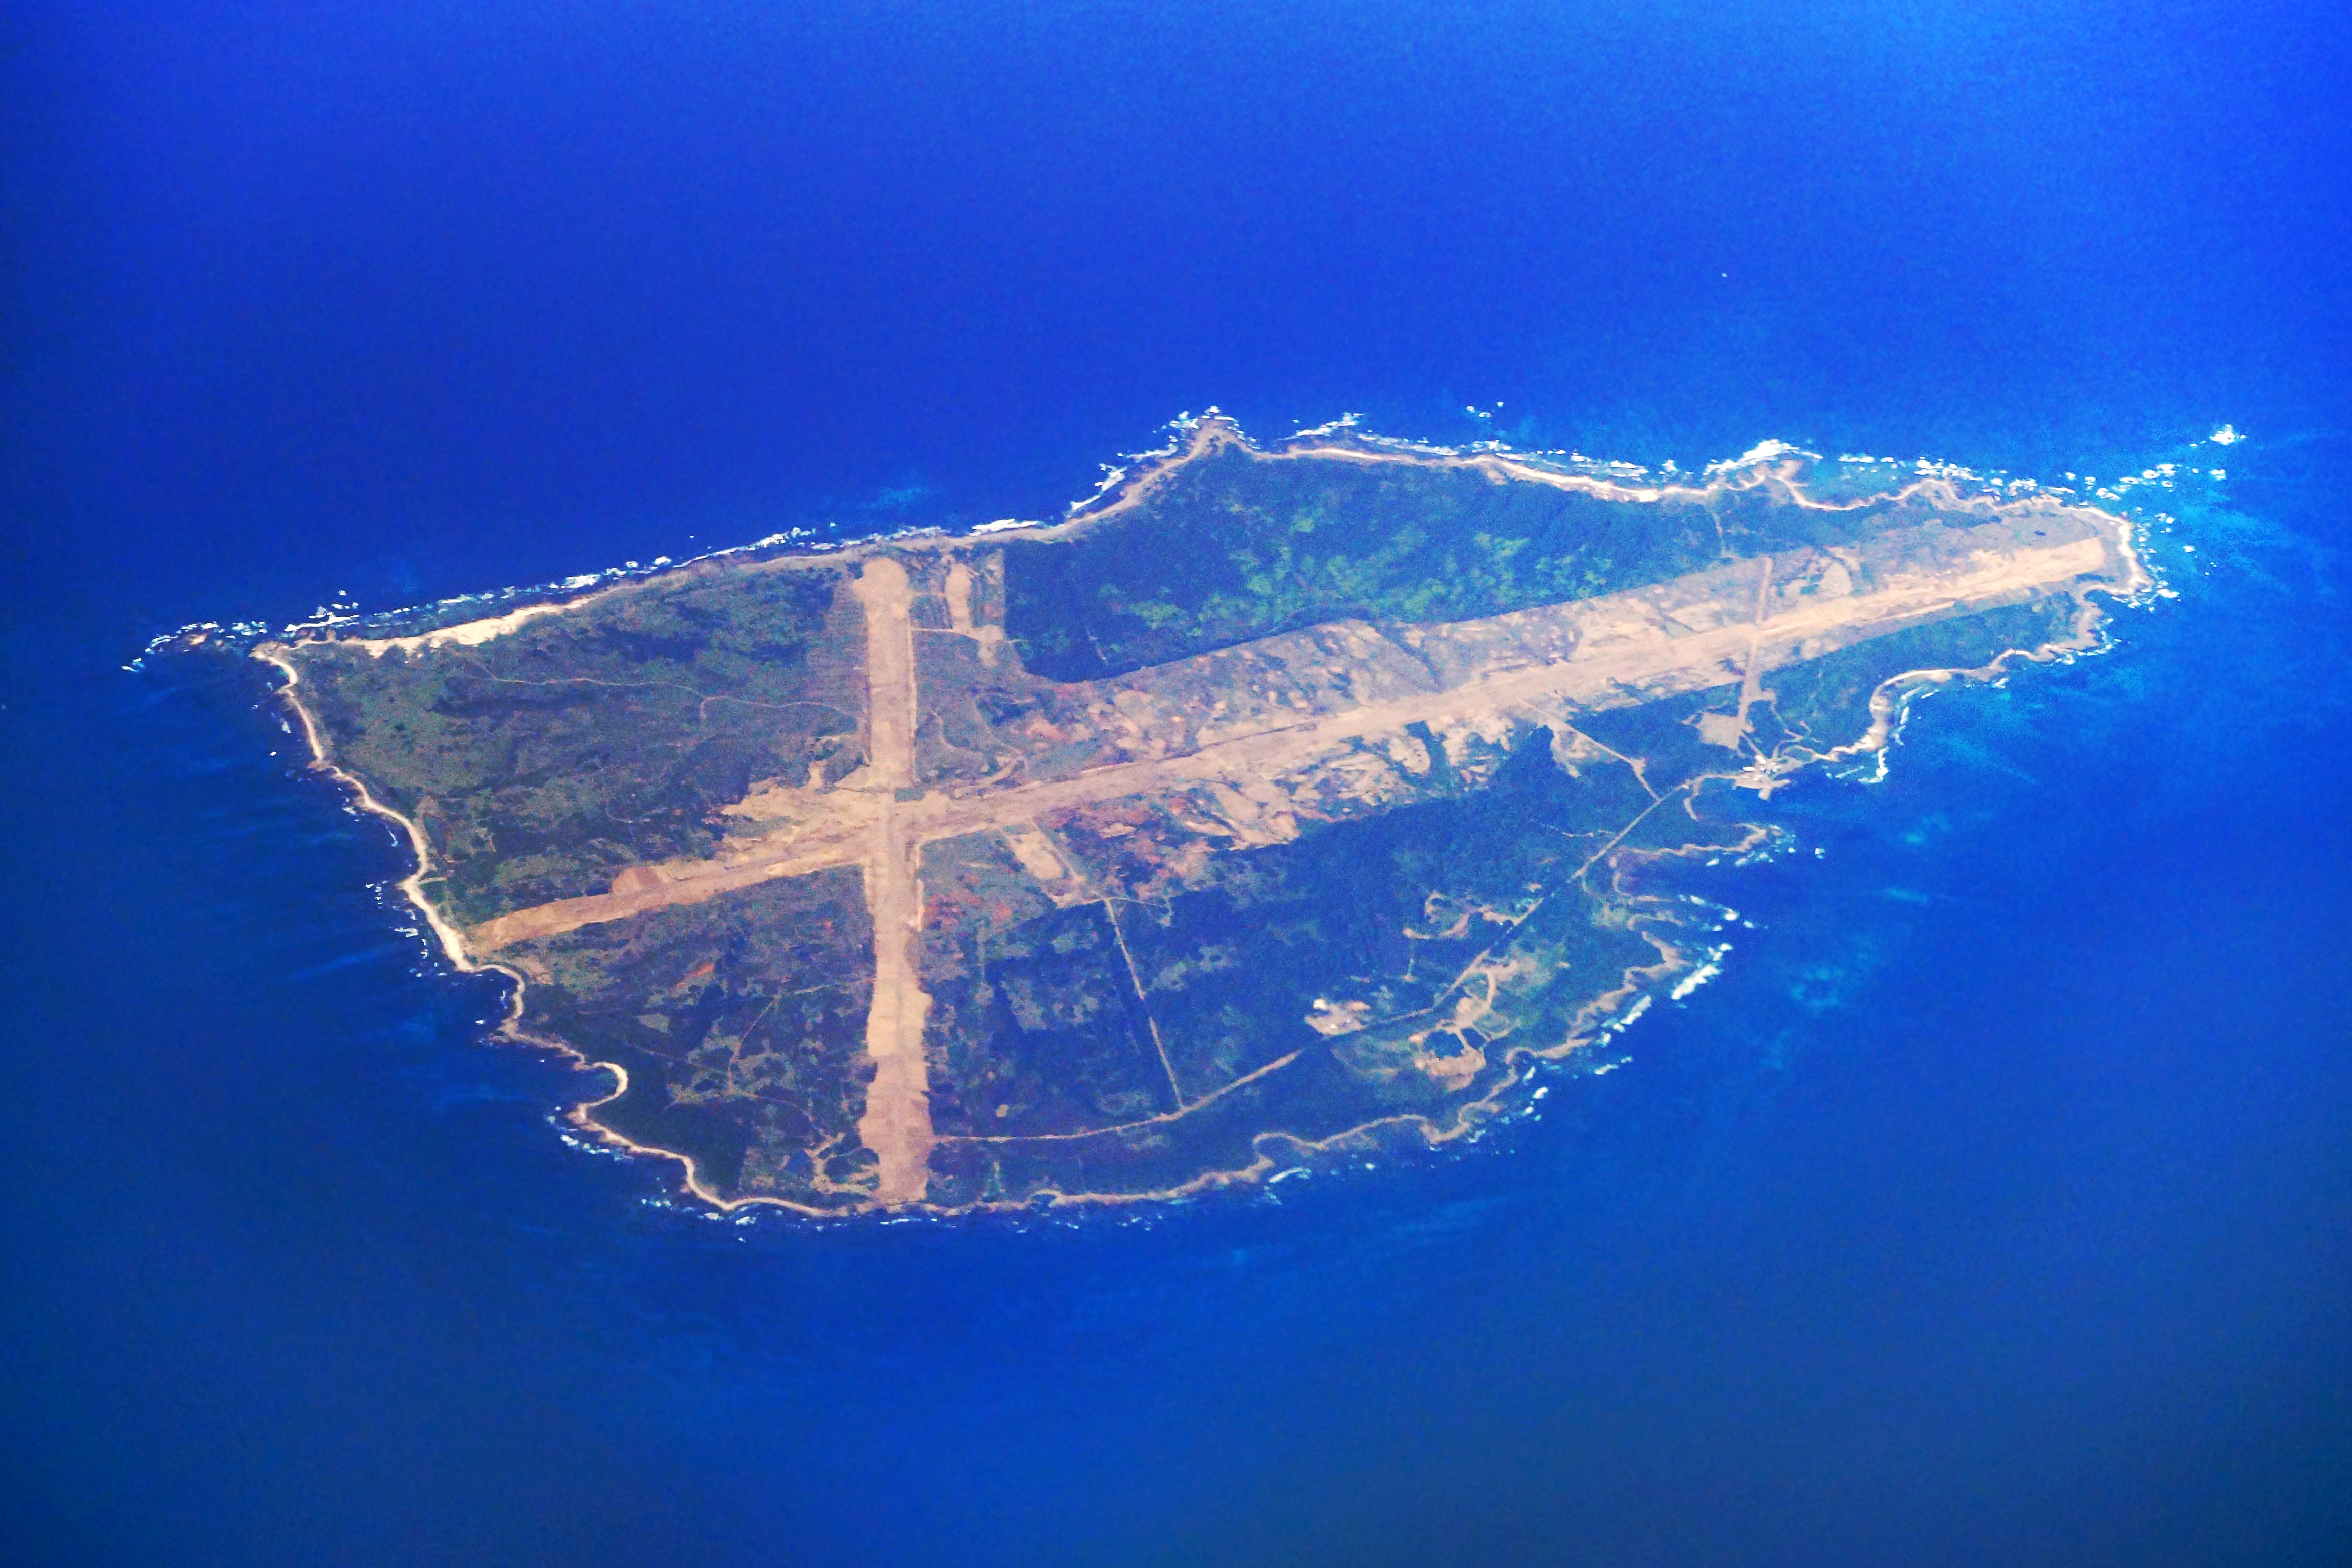 Japan is announcing the purchase of Mageshima Island, which is an uninhabited island about 21 miles off the coast of Kyushu, a Japanese main island.